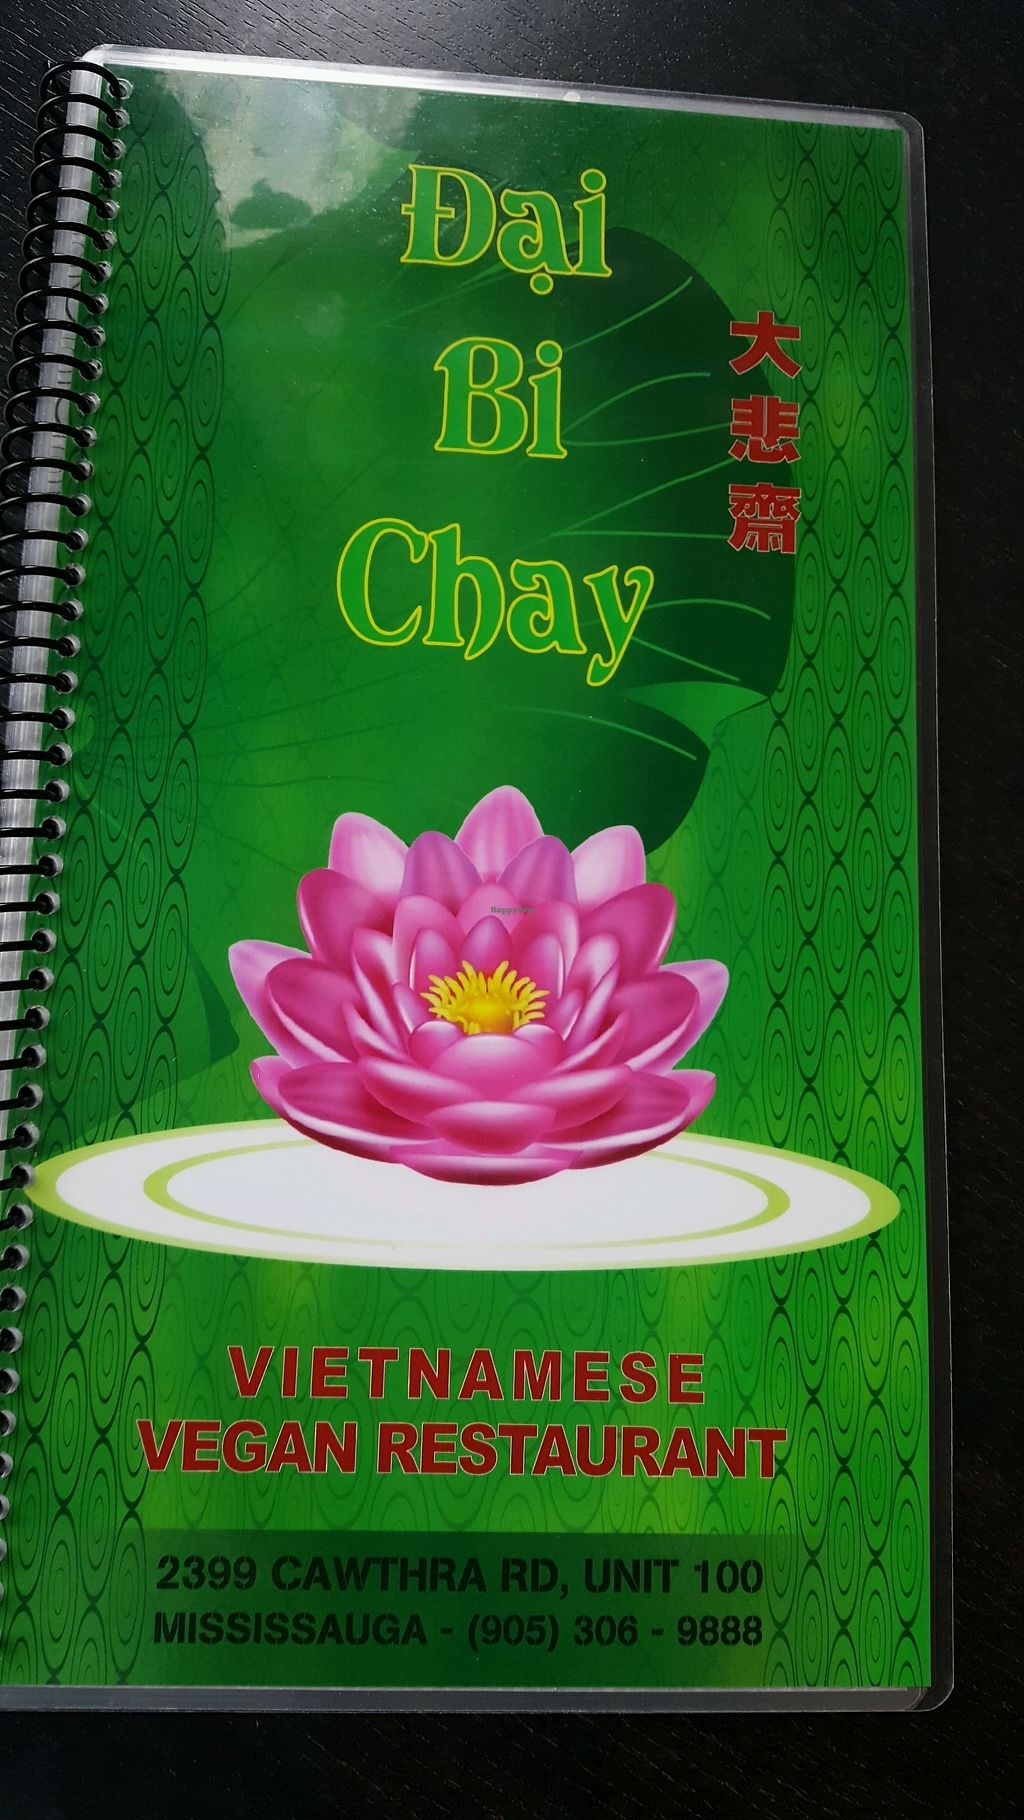 "Photo of Dai Bi Chay  by <a href=""/members/profile/PaulineHuynhOng"">PaulineHuynhOng</a> <br/>menu <br/> January 29, 2018  - <a href='/contact/abuse/image/84600/352417'>Report</a>"